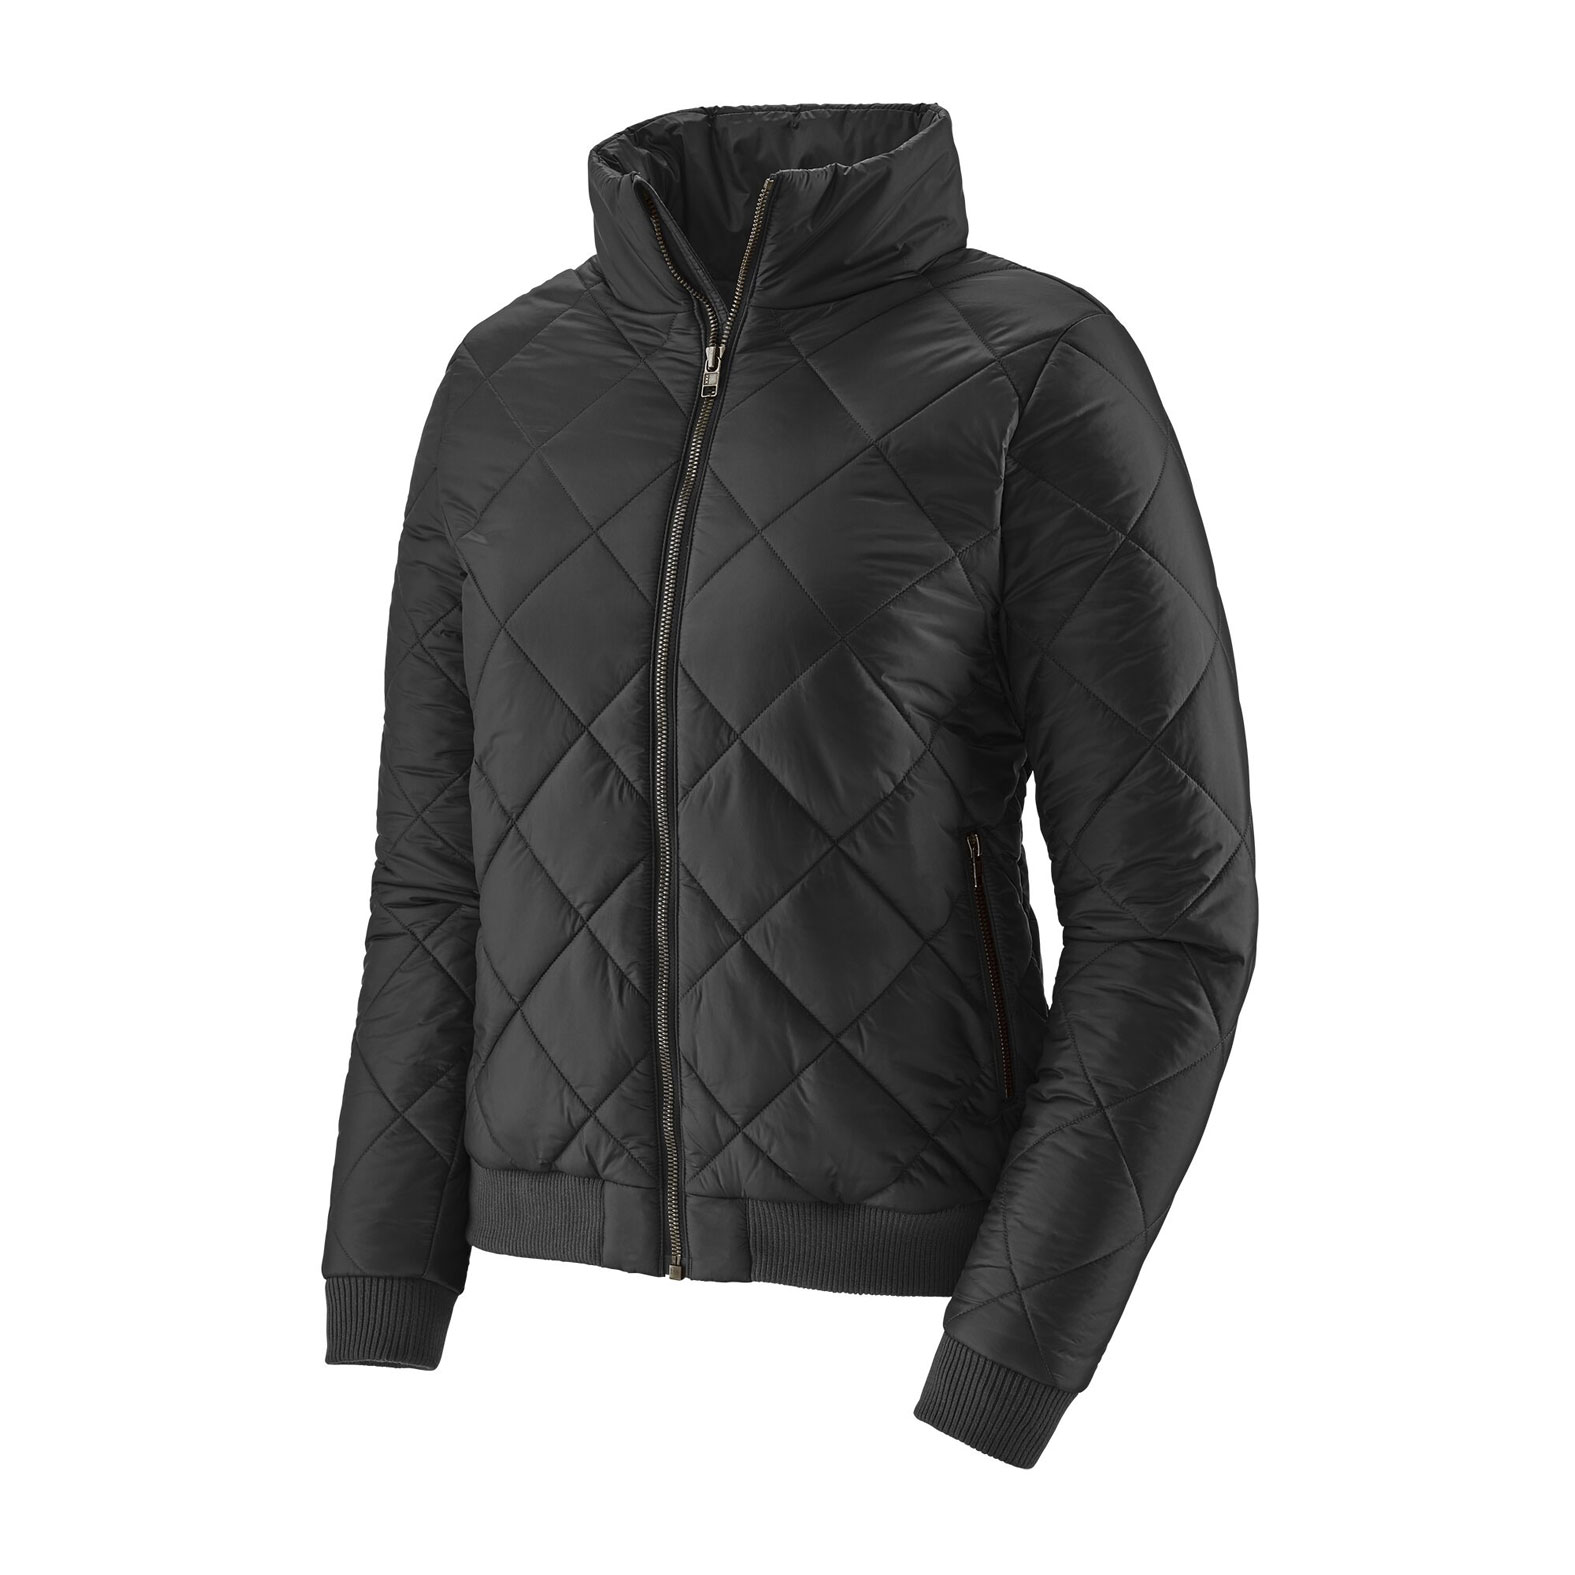 Patagonia Womens Prow Bomber Jacket